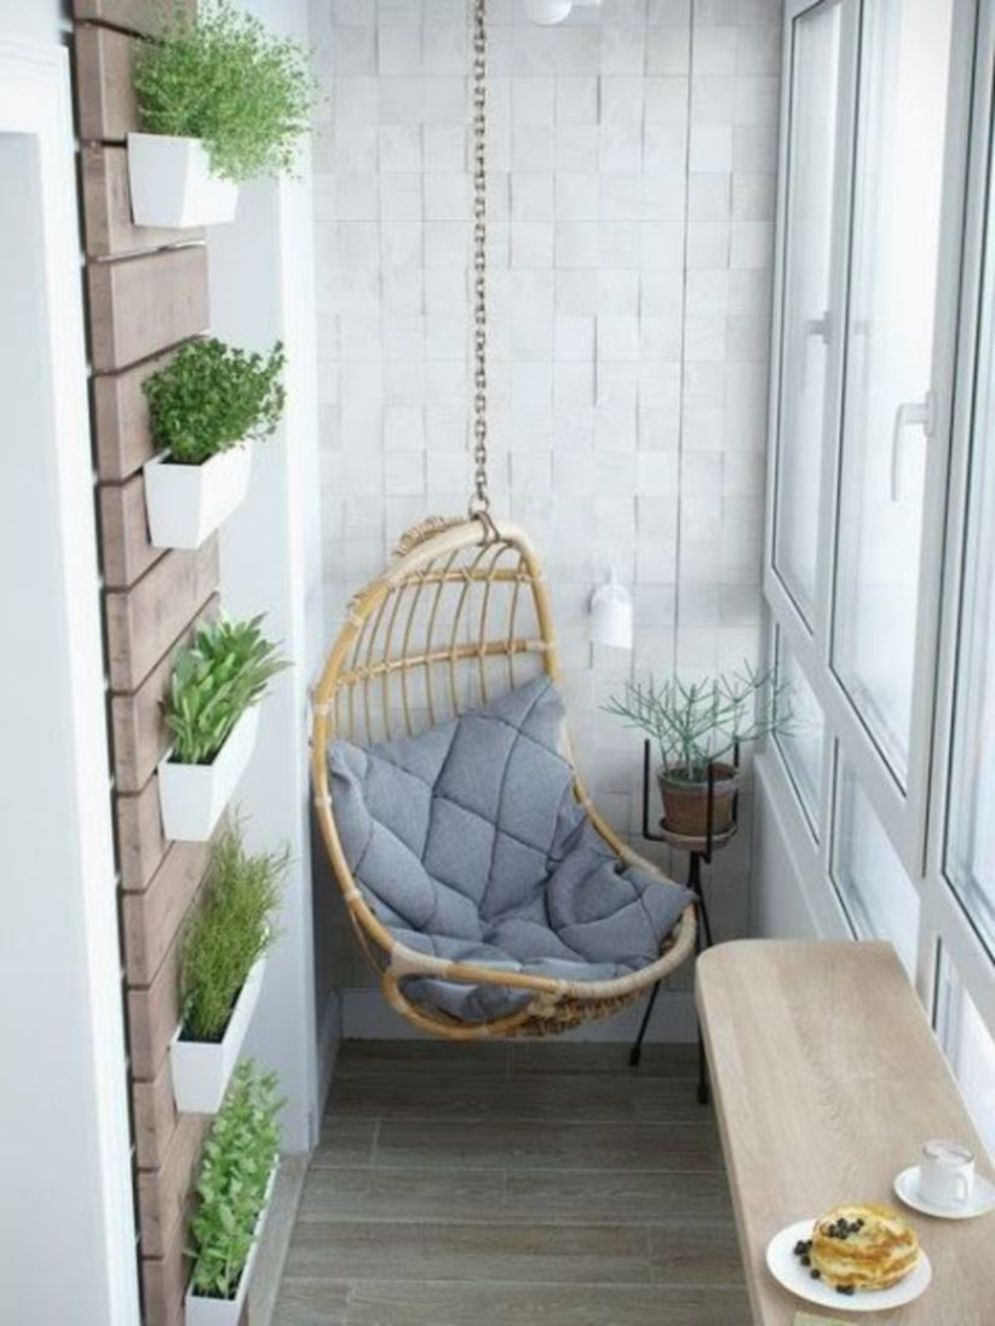 Clever apartment balcony conversion maximizing small space into functional living area Image 27